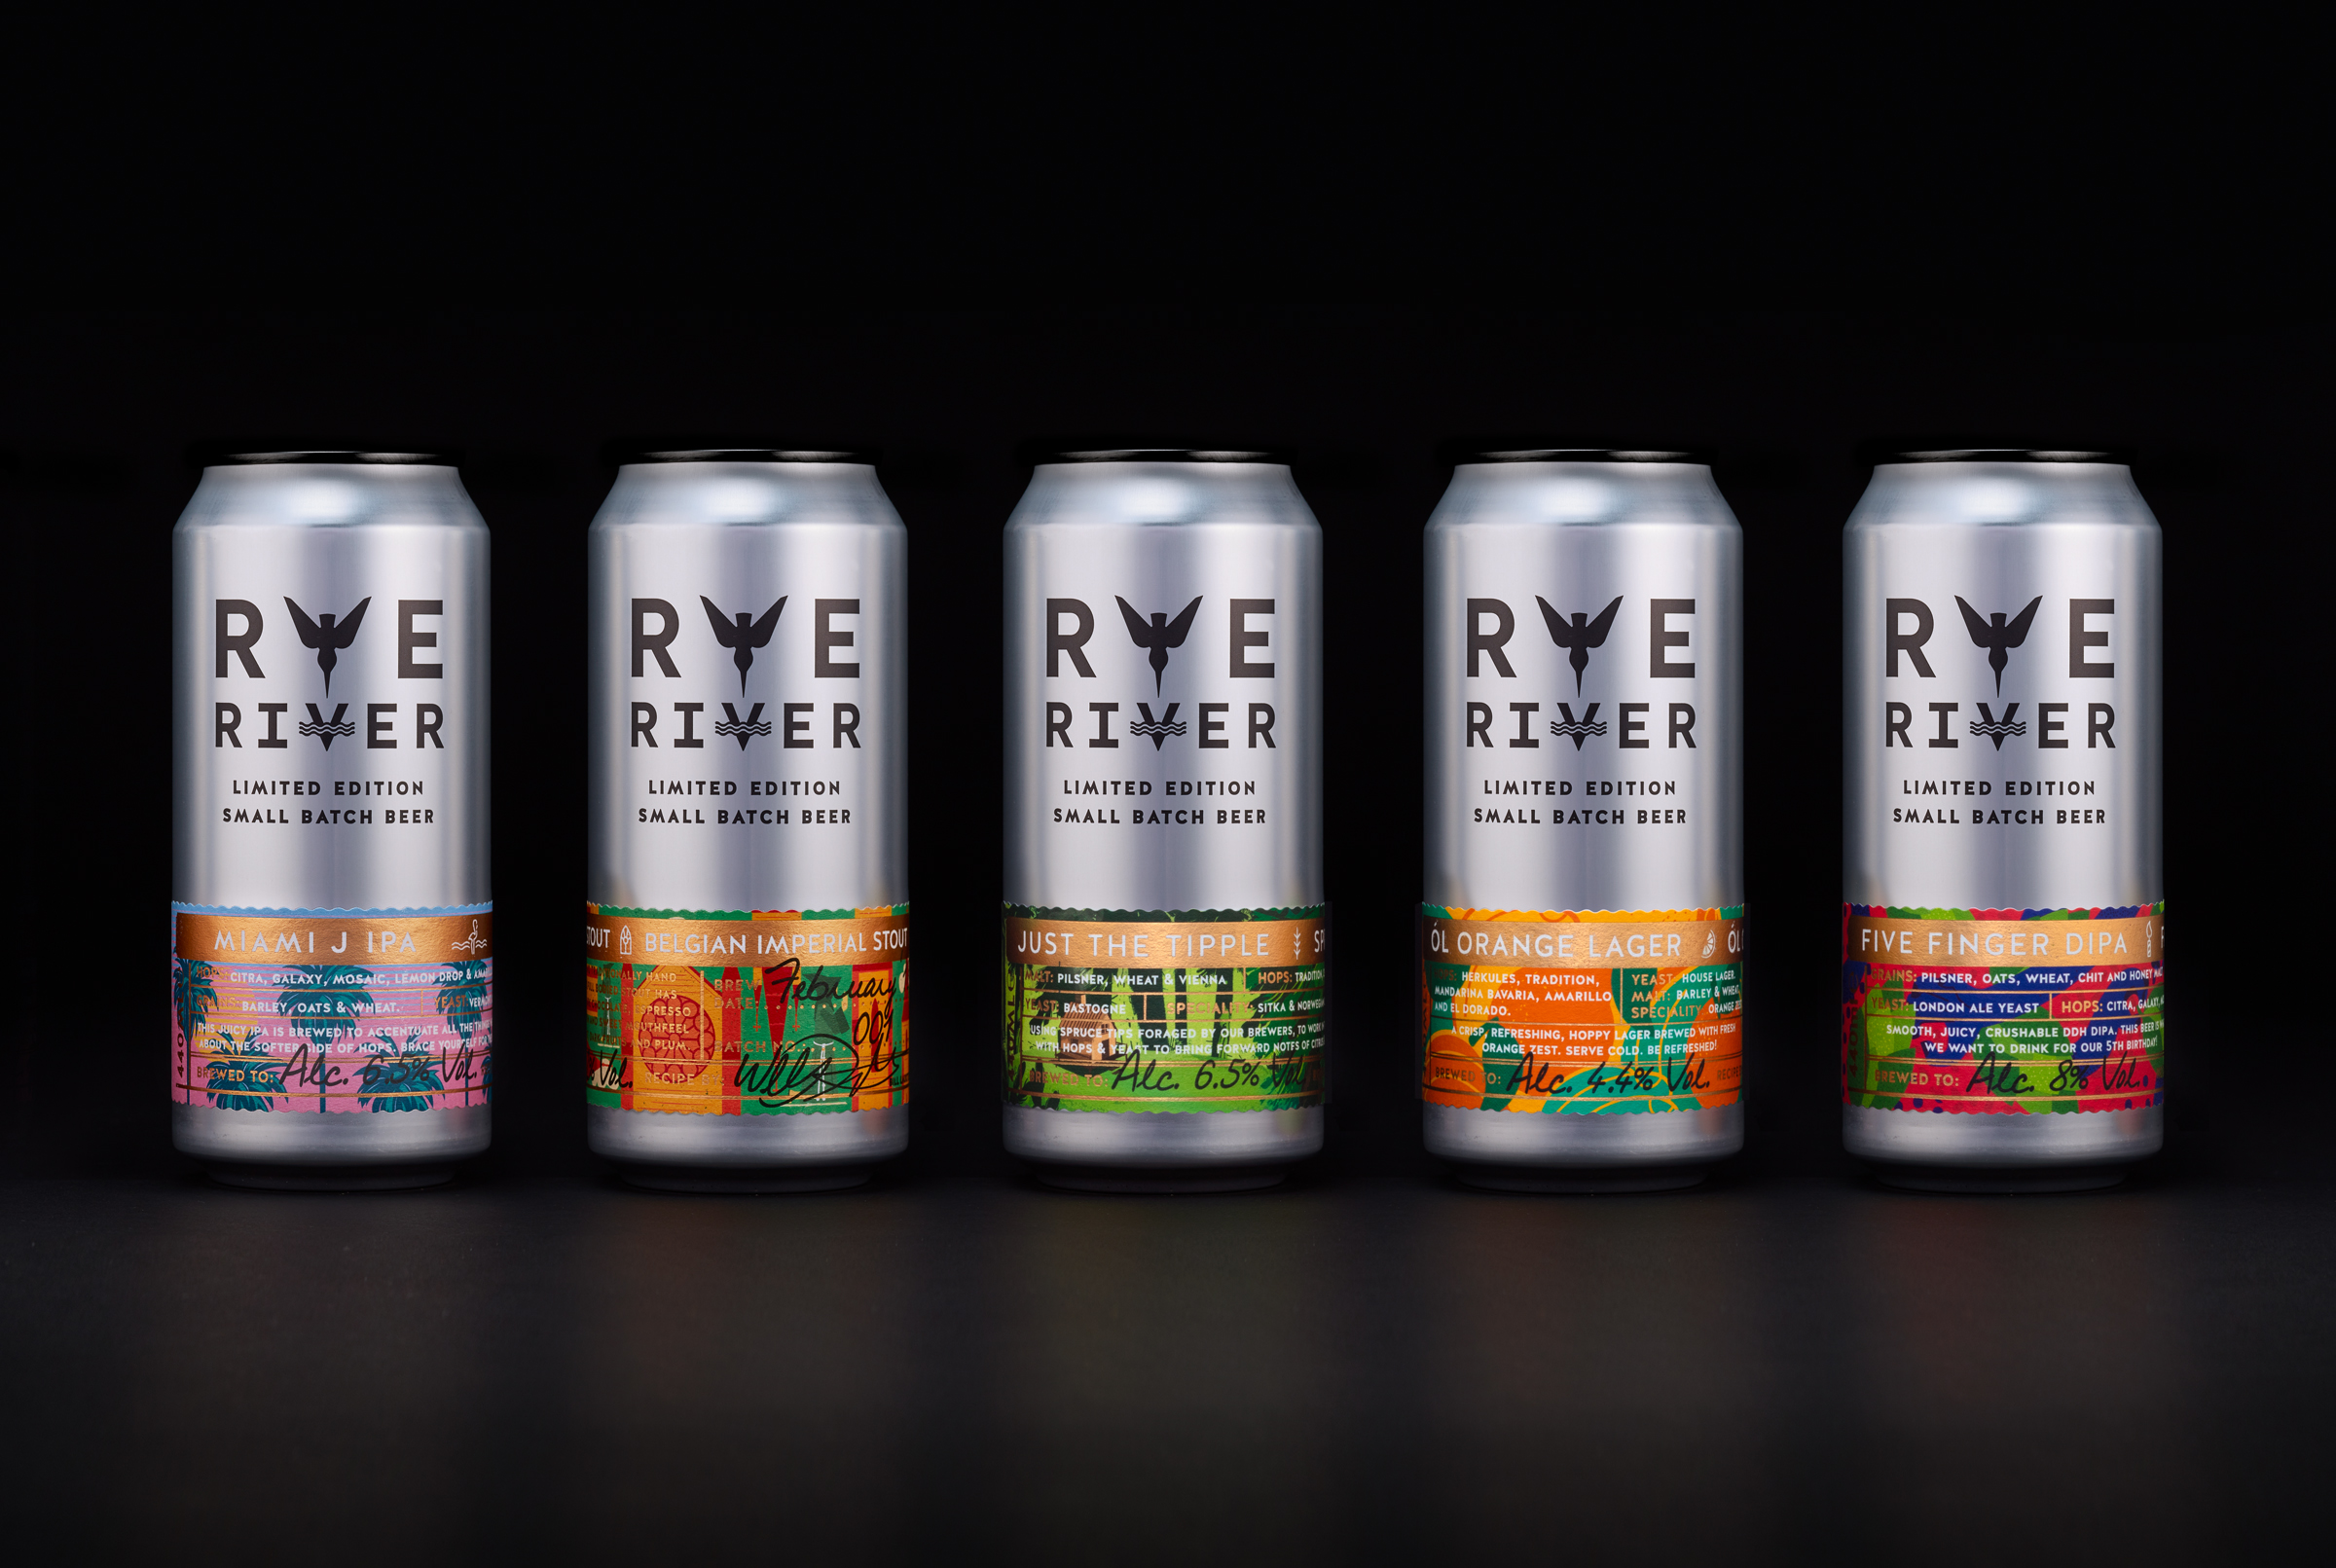 Cover image: Rye River Limited Edition Release Beers